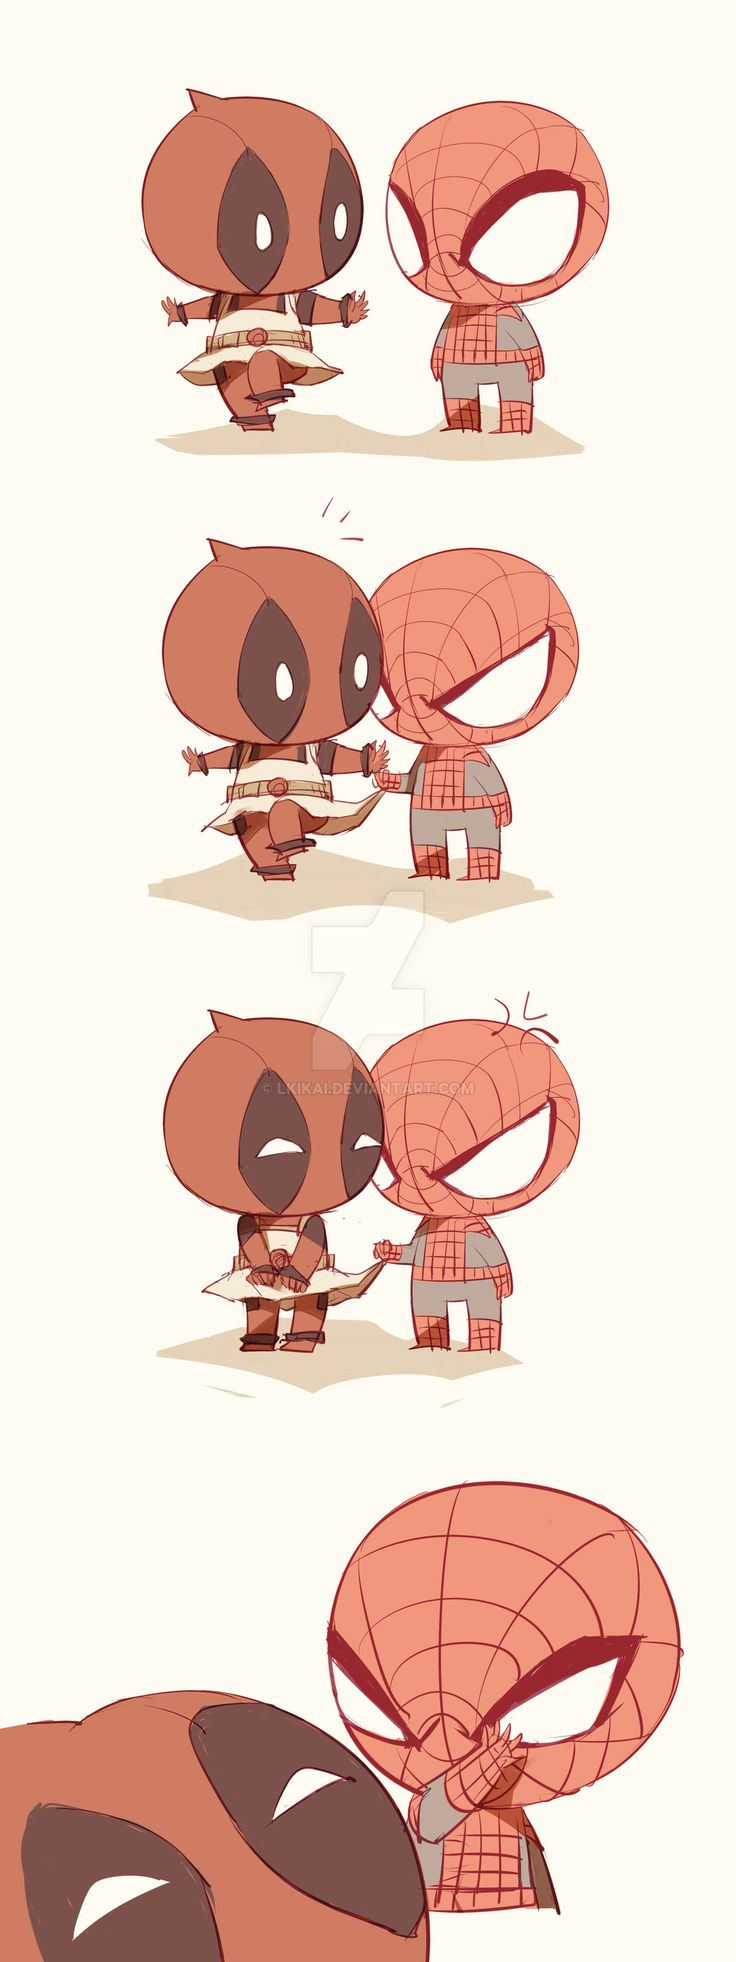 Spideypool136 by LKiKAi.deviantart.com on @DeviantArt